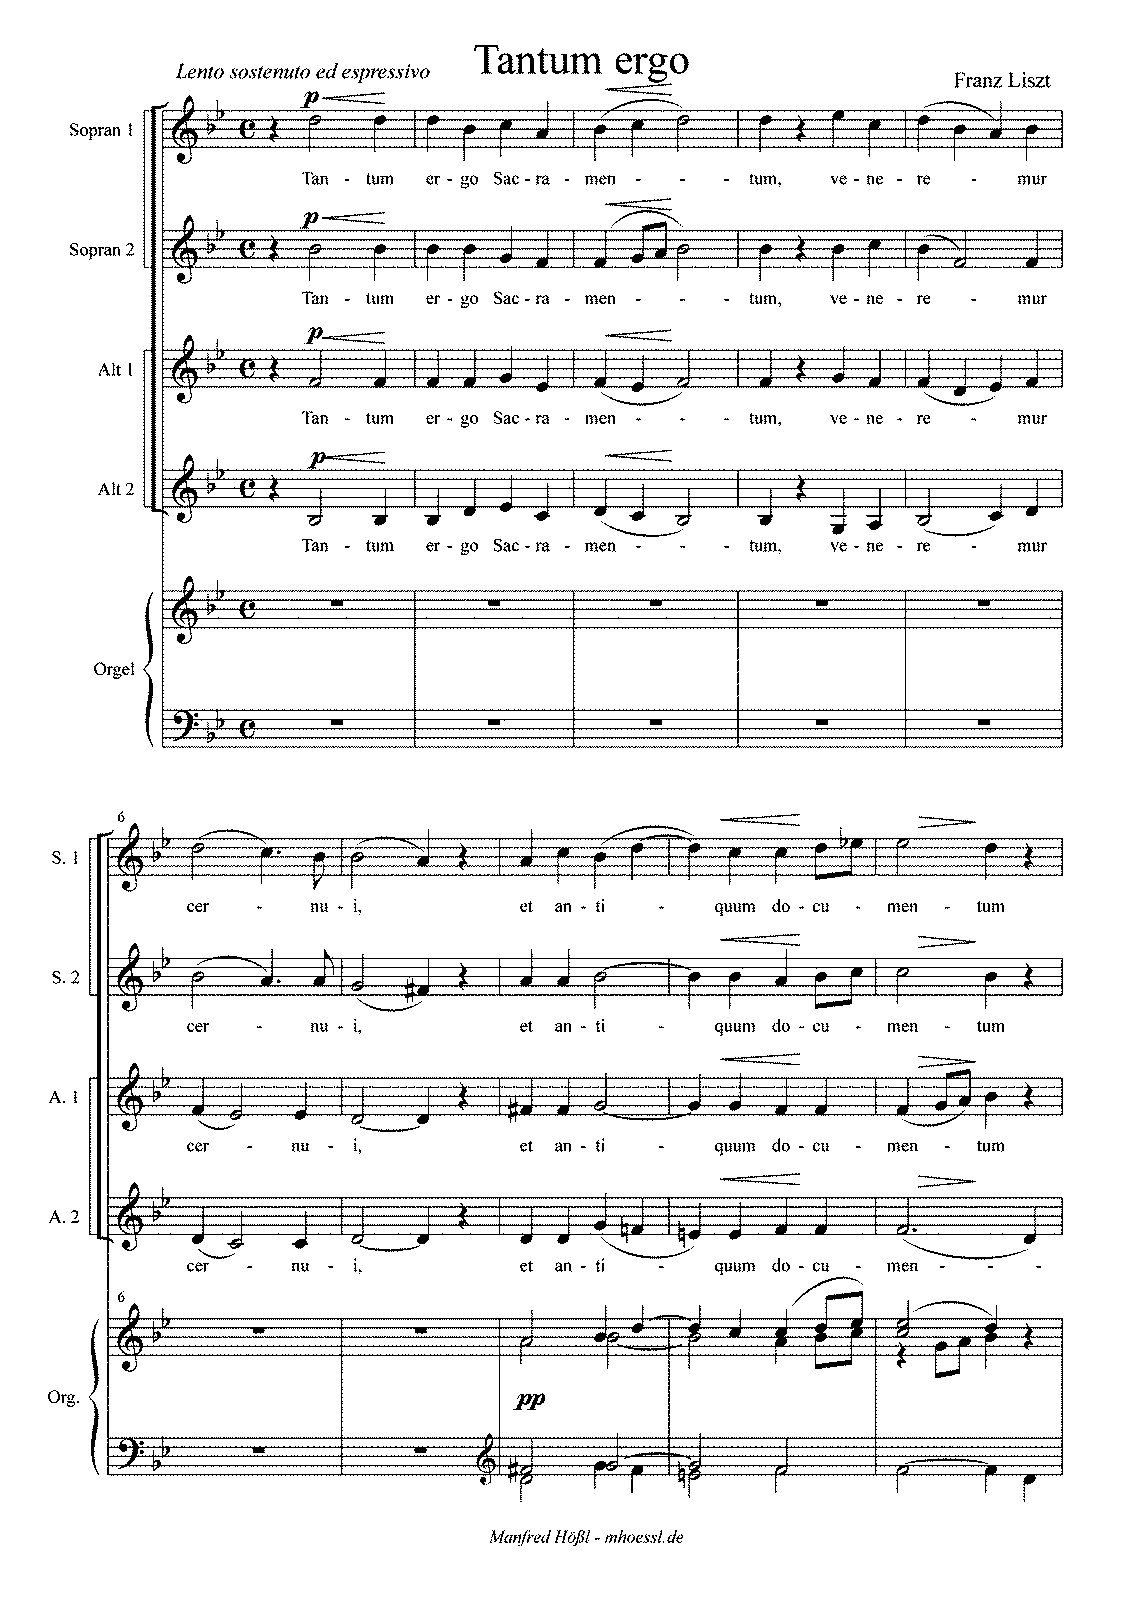 Liszt - S42ii Tantum ergo 2nd version (typeset).pdf